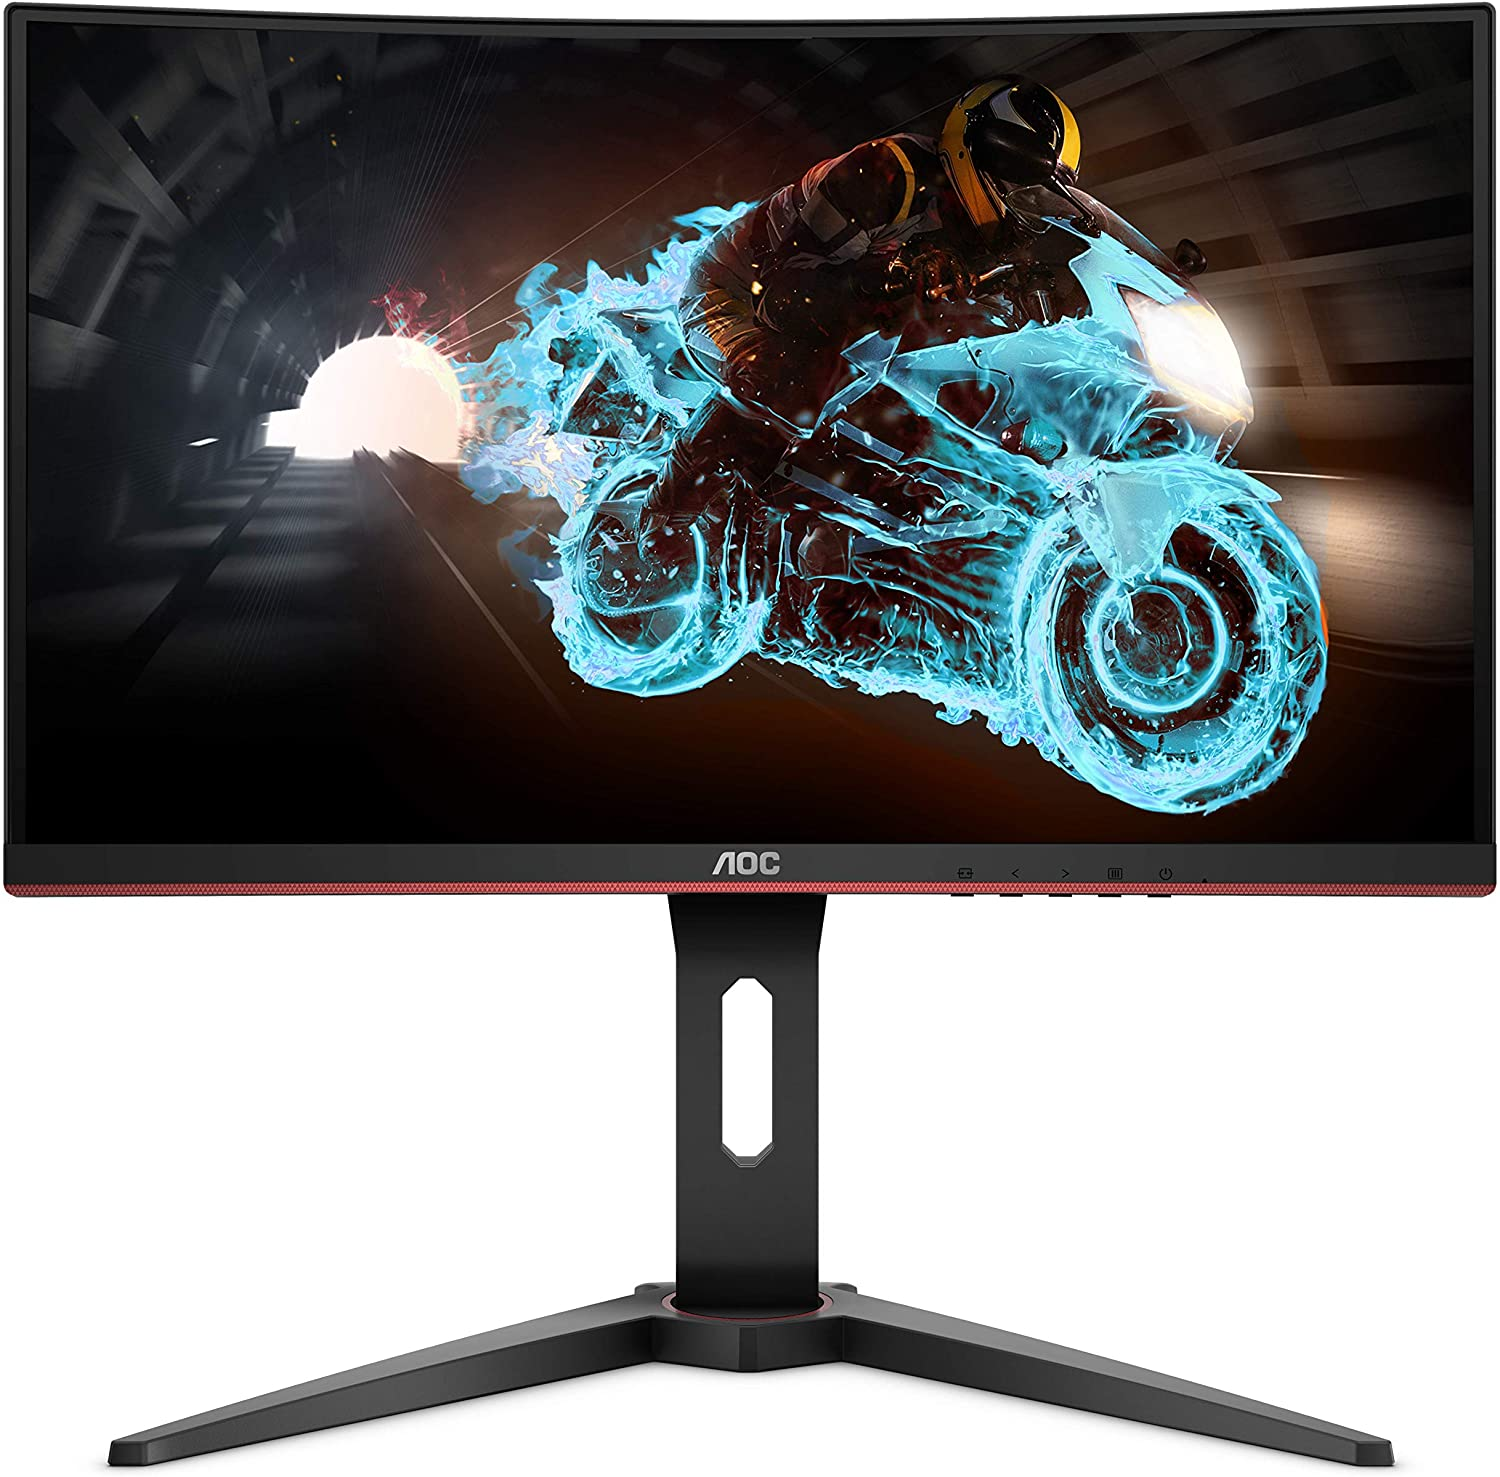 "AOC C24G1A 24"" Curved Frameless Gaming Monitor, FHD 1920x1080, 1500R, VA, 1ms MPRT, 165Hz (144Hz supported), FreeSync Premium, Height adjustable"